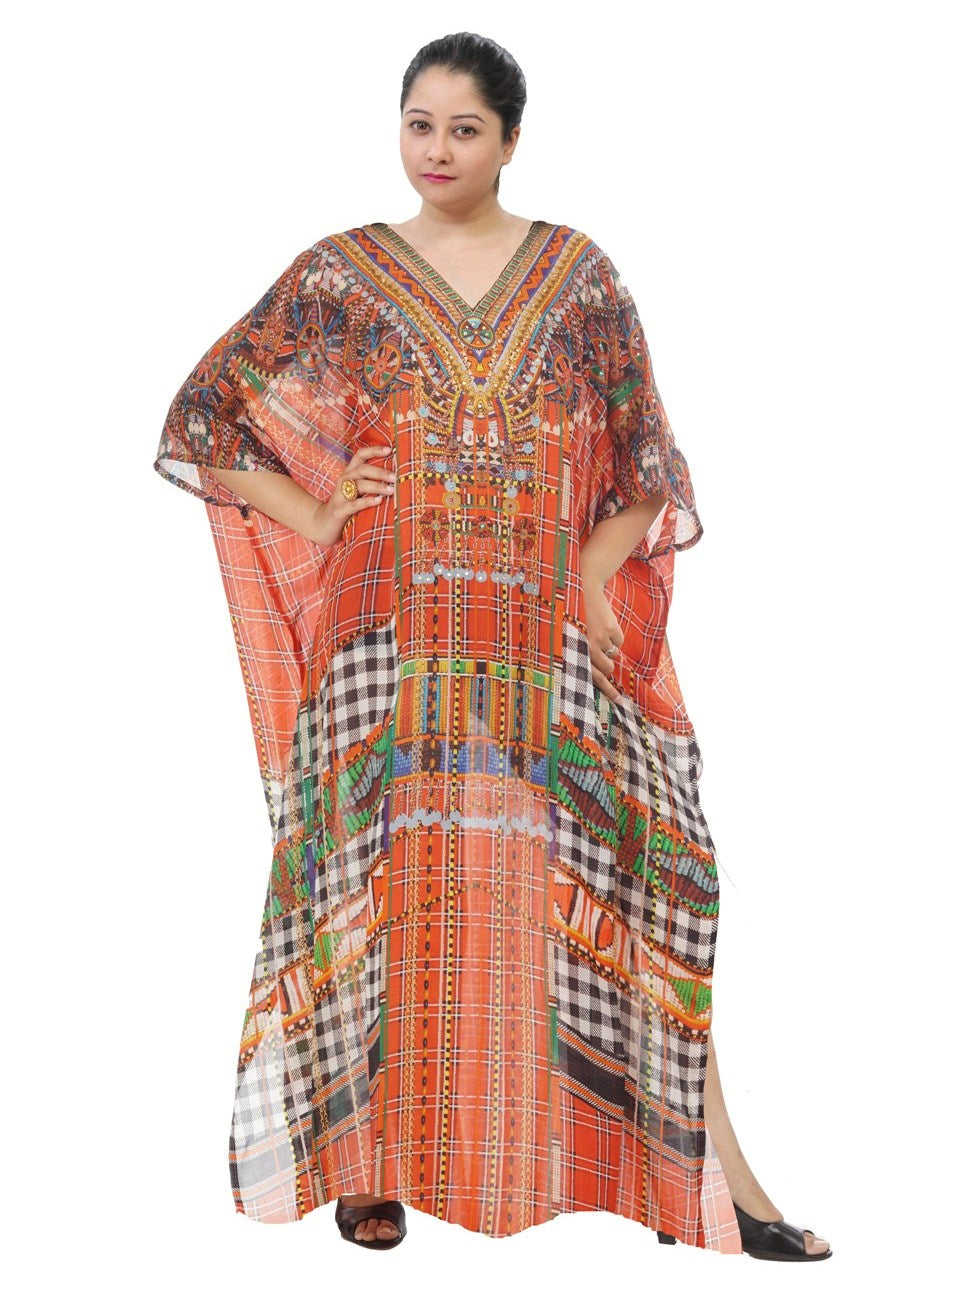 Beach kaftan Dress Plus size sequin Designer Resort wear silk kaftans bikini kaftan for shorties